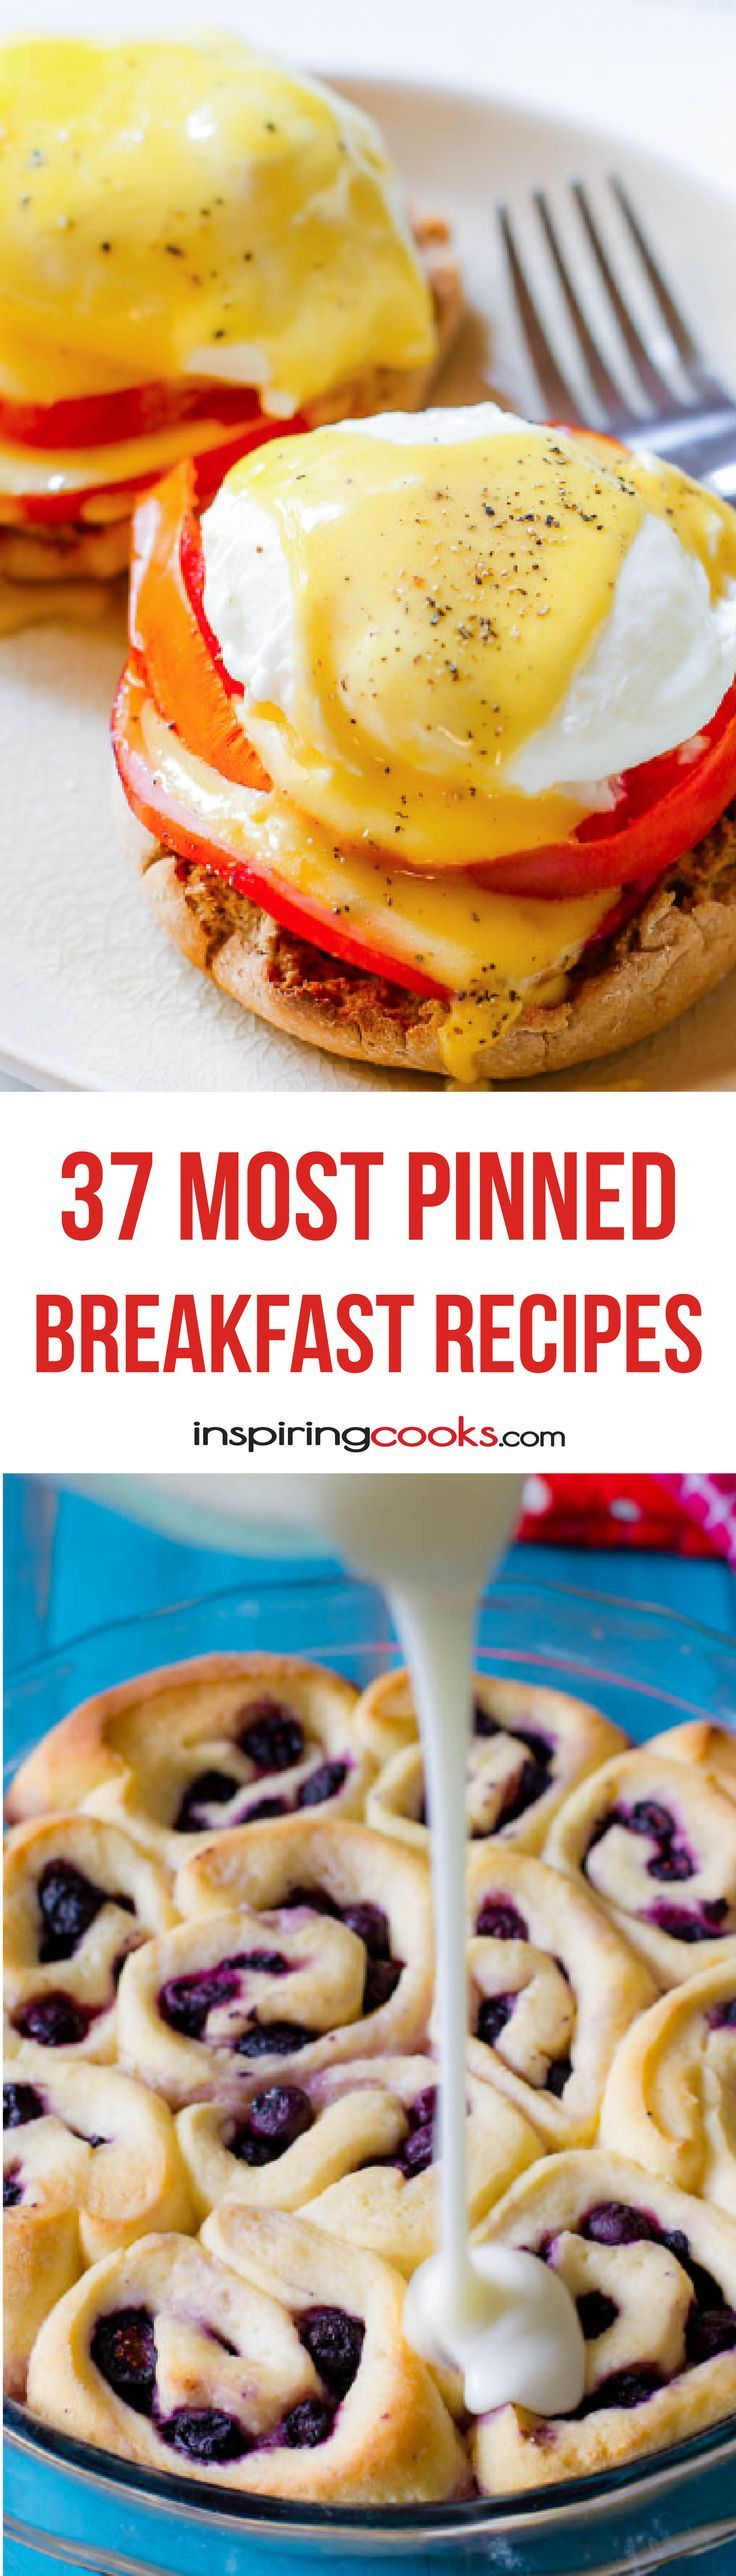 The 37 Most Pinned Breakfast Recipes – All these have been pinned at least 50,000 times!